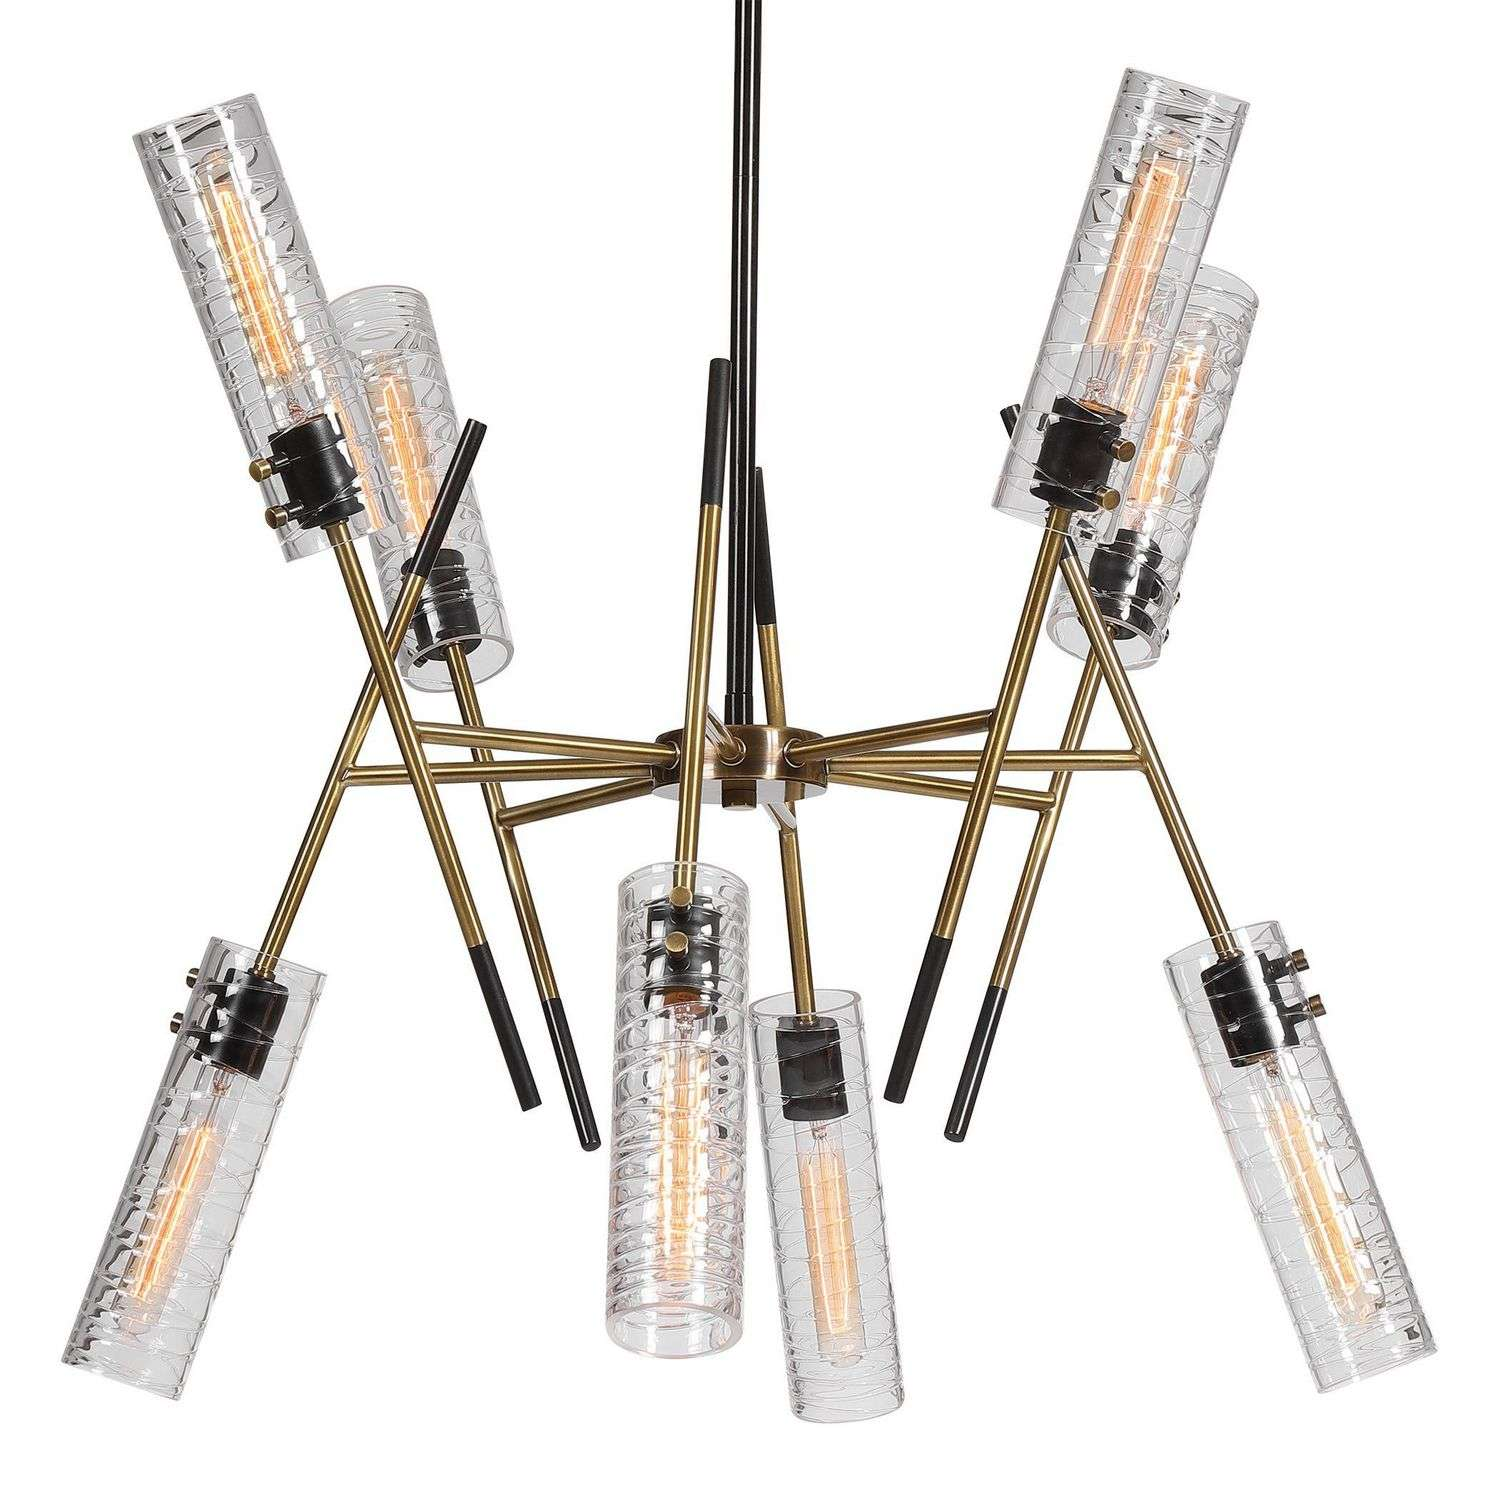 Uttermost Telesto 8 Light Linear Pendant